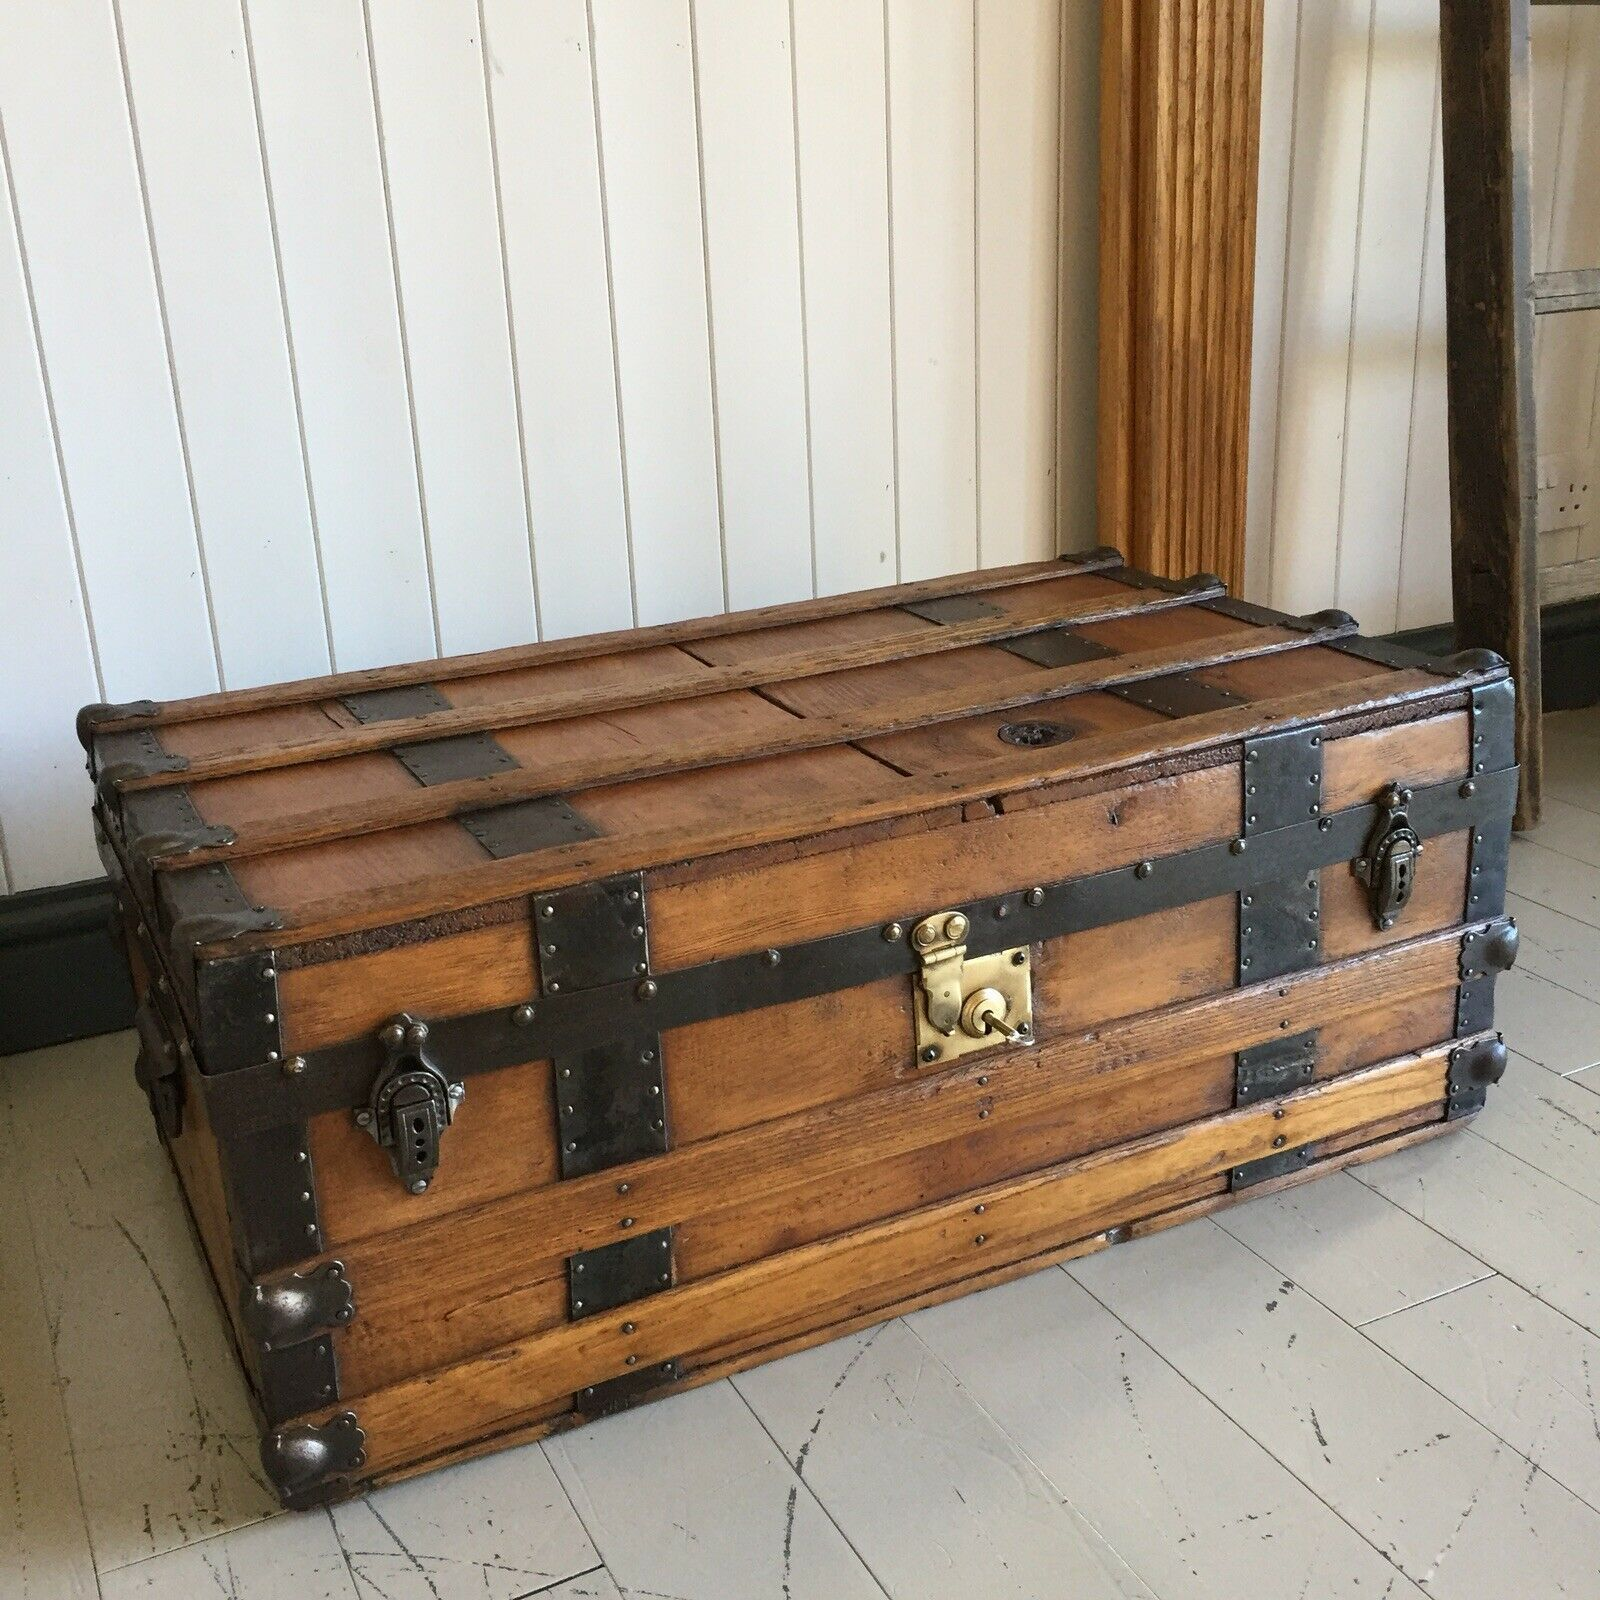 Antique Victorian Steamer Trunk Coffee Table Old Rustic Wooden Blanket Chest Pine Storage Box Key Vinterior